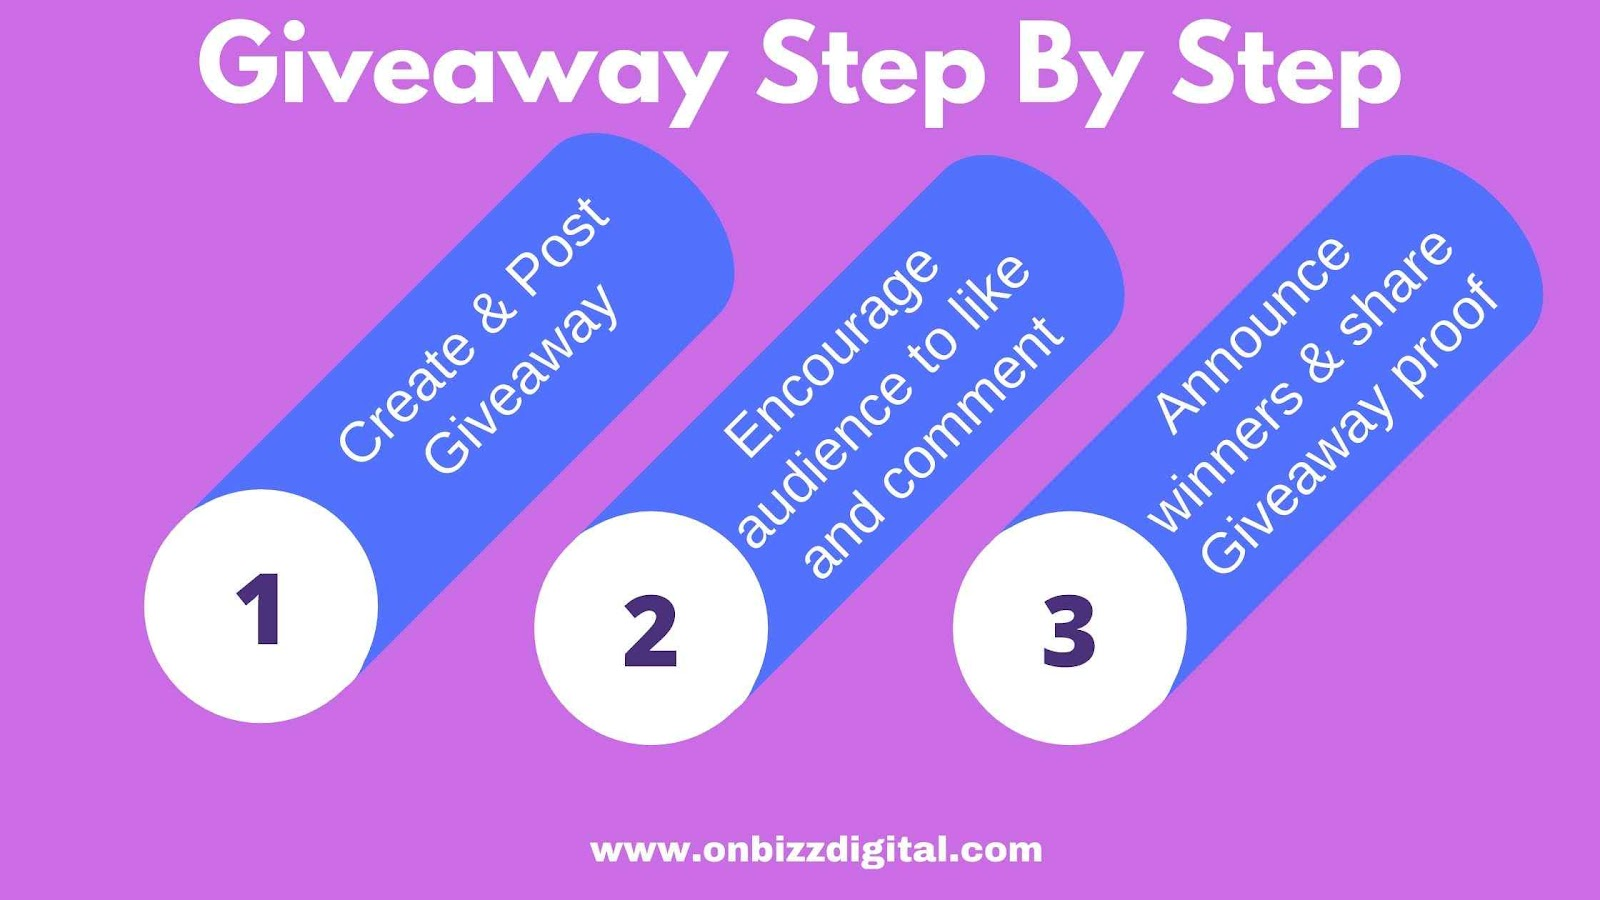 How to do Giveaway?